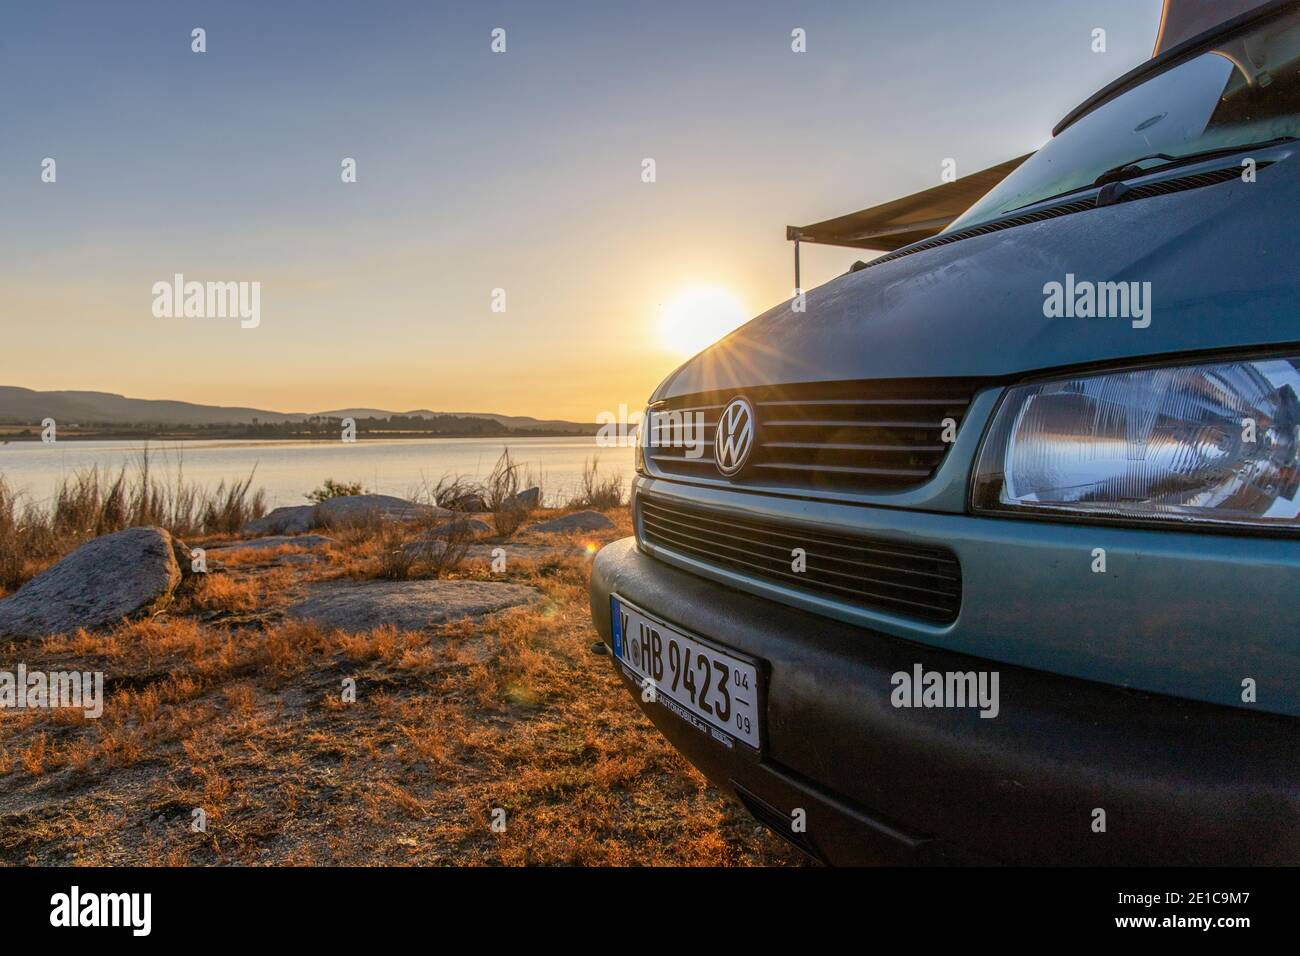 Vw T4 High Resolution Stock Photography And Images Alamy